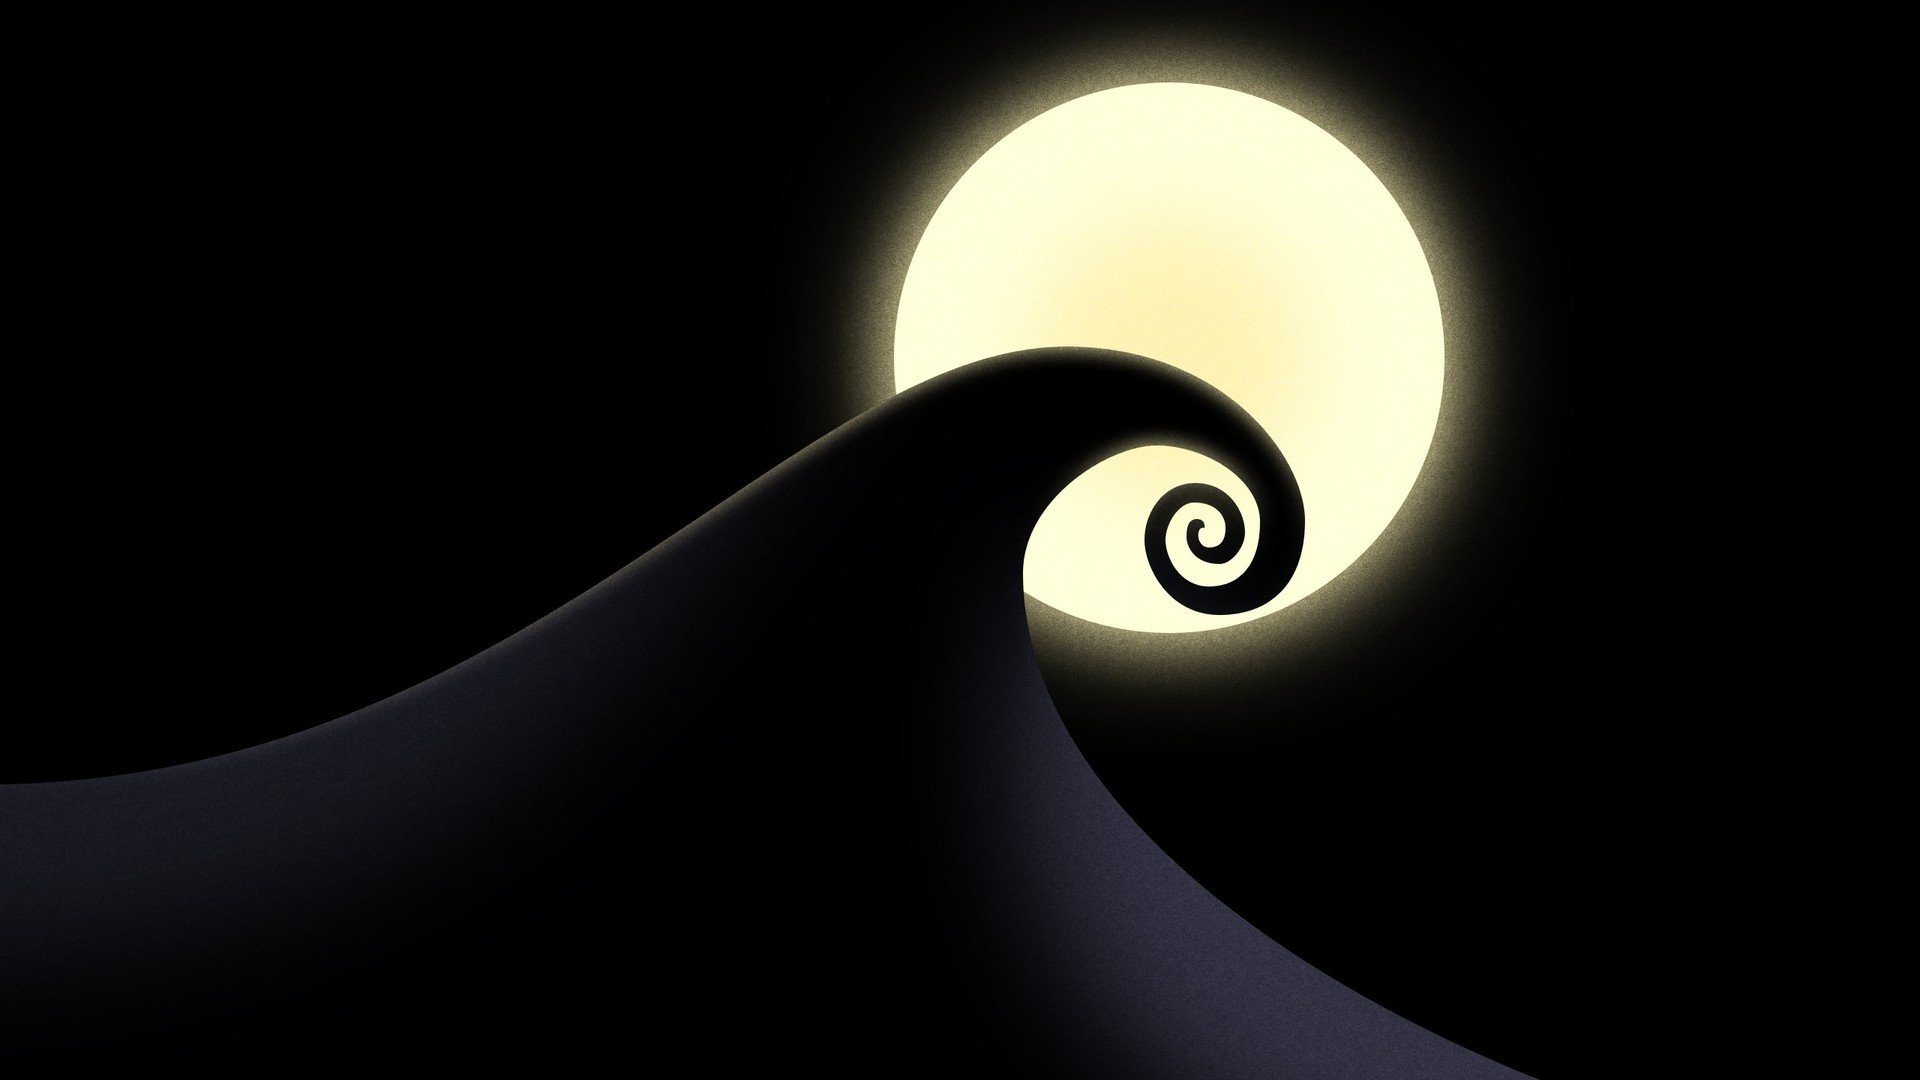 The Nightmare Before Christmas wallpaper 15268 1920x1080